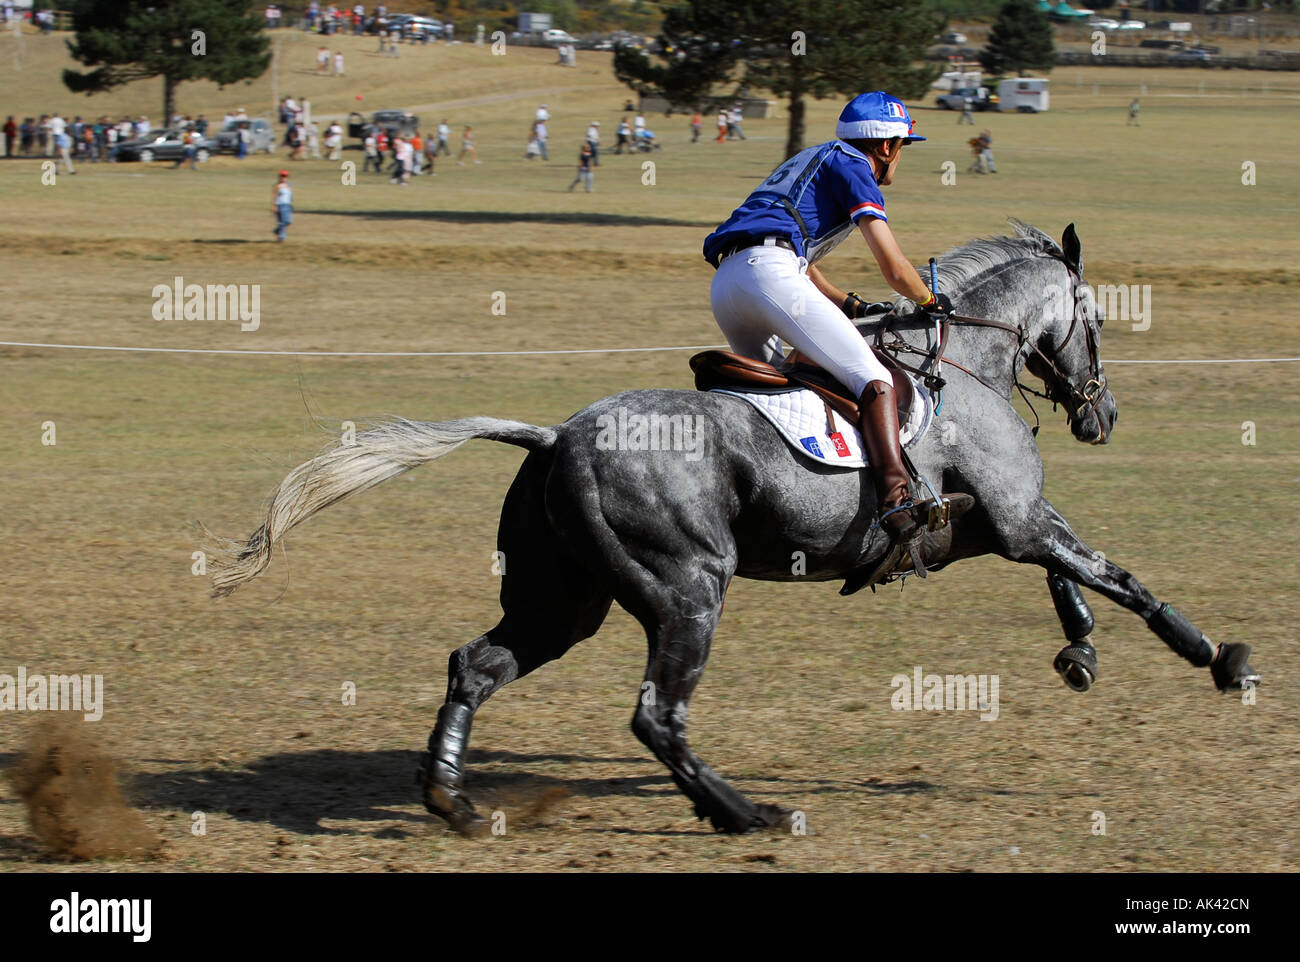 Nicolas Touzaint, winner of the 2007 European Three Day Eventing Championships in Pratoni Italy on the cross country - Stock Image